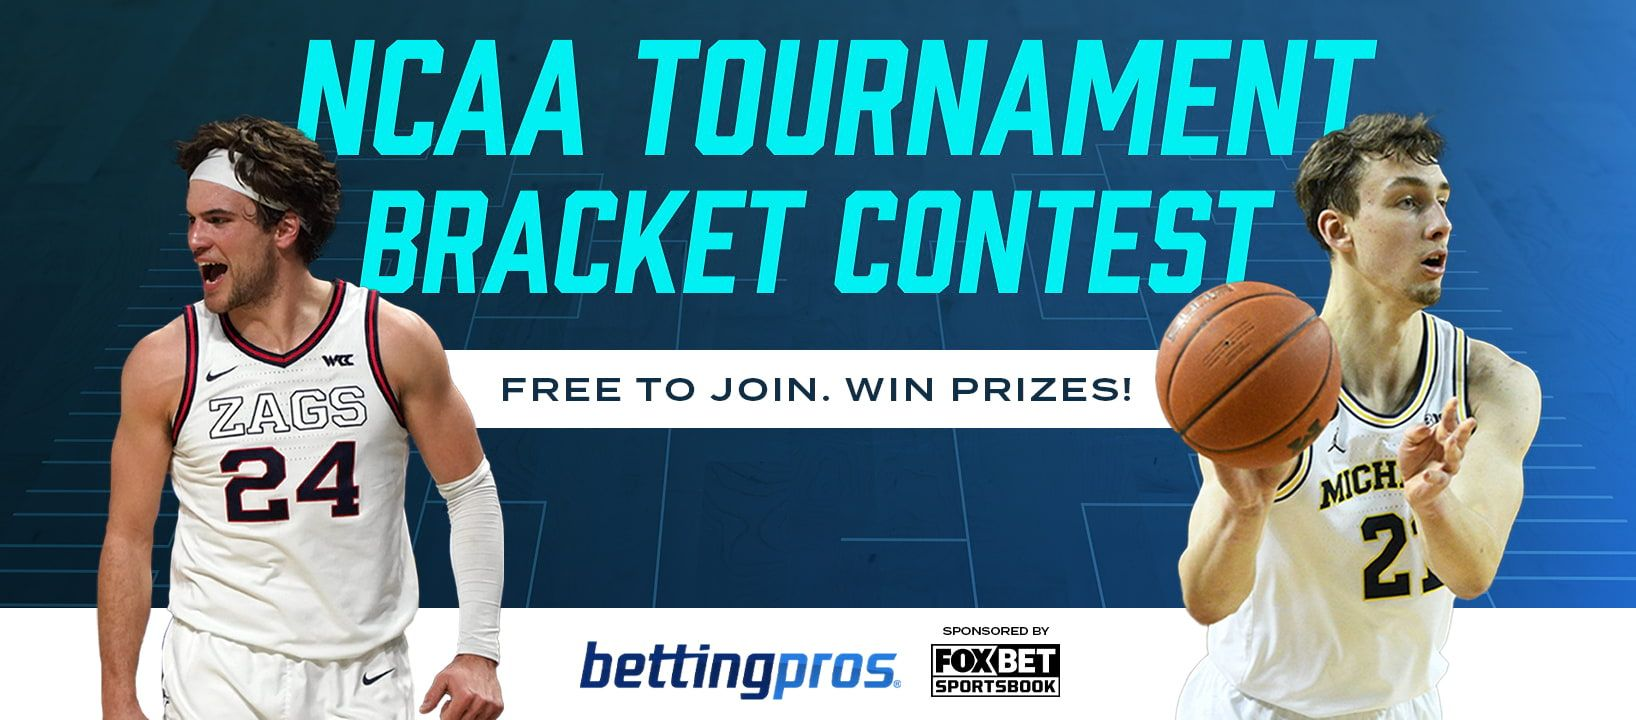 [3/15/2021] March Madness Is Here: Optimize Your Bracket and Enter Our Free Contest!